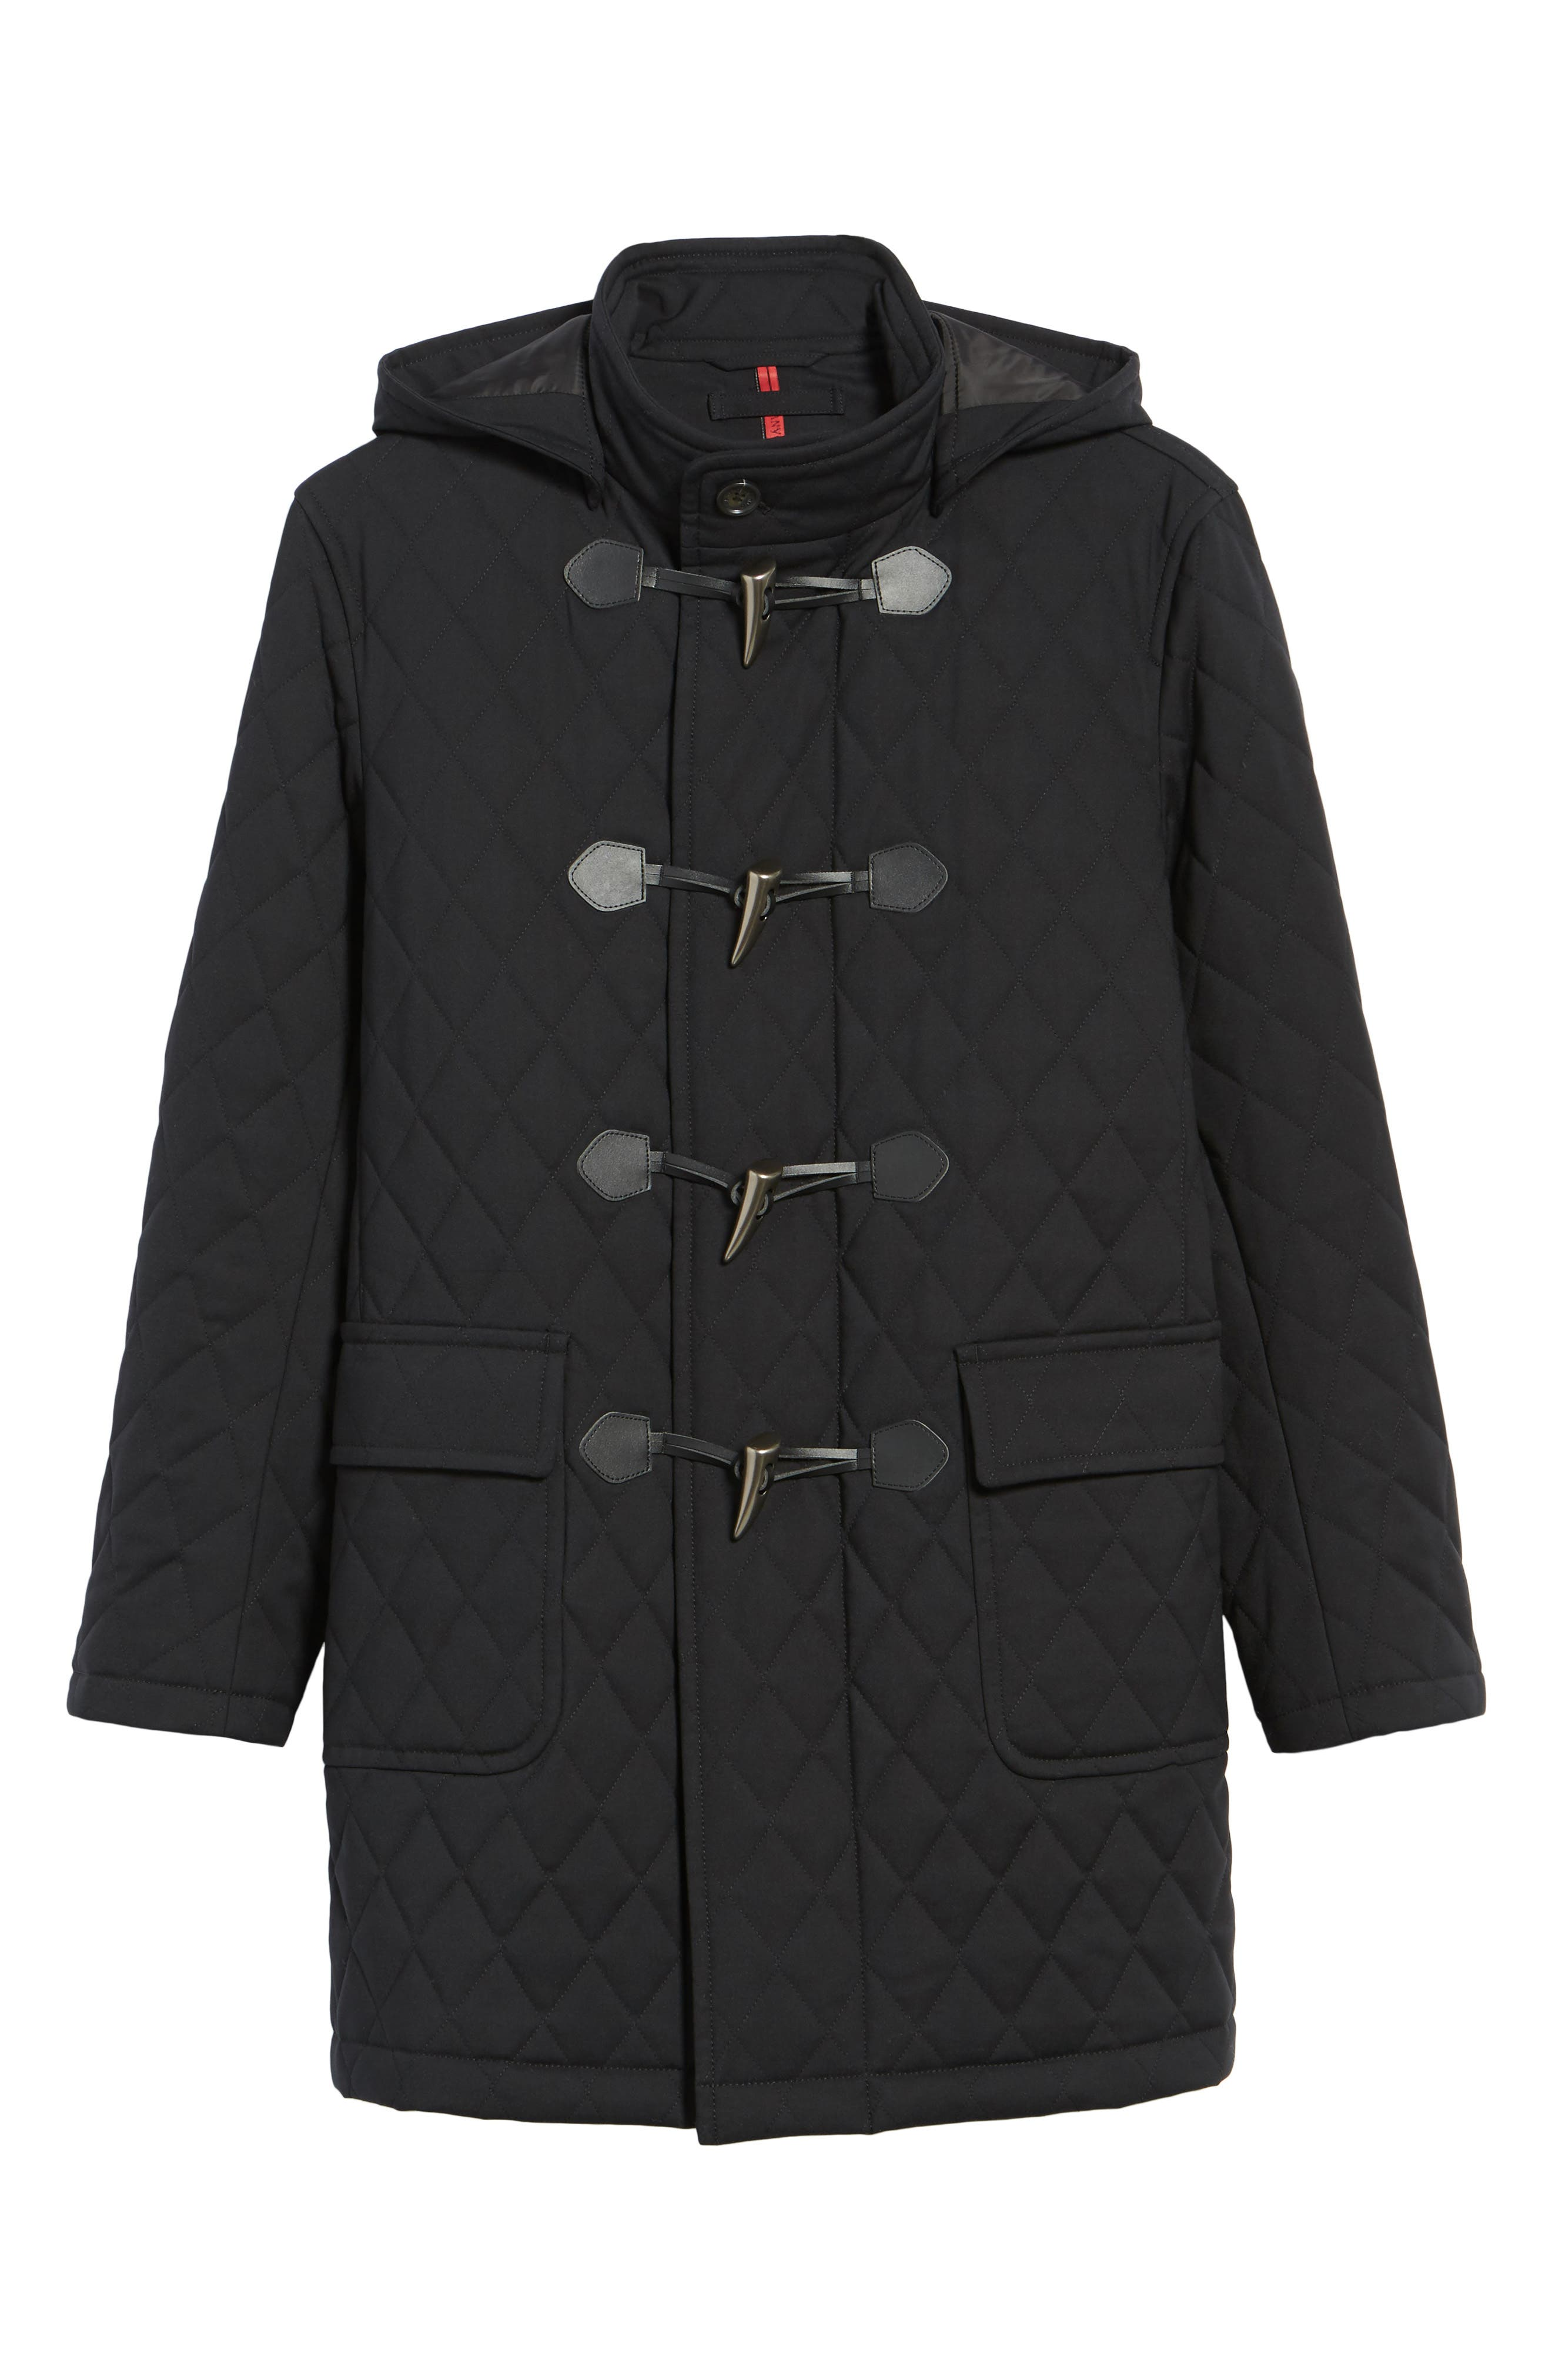 Francisco Quilted Duffle Coat,                             Alternate thumbnail 5, color,                             009